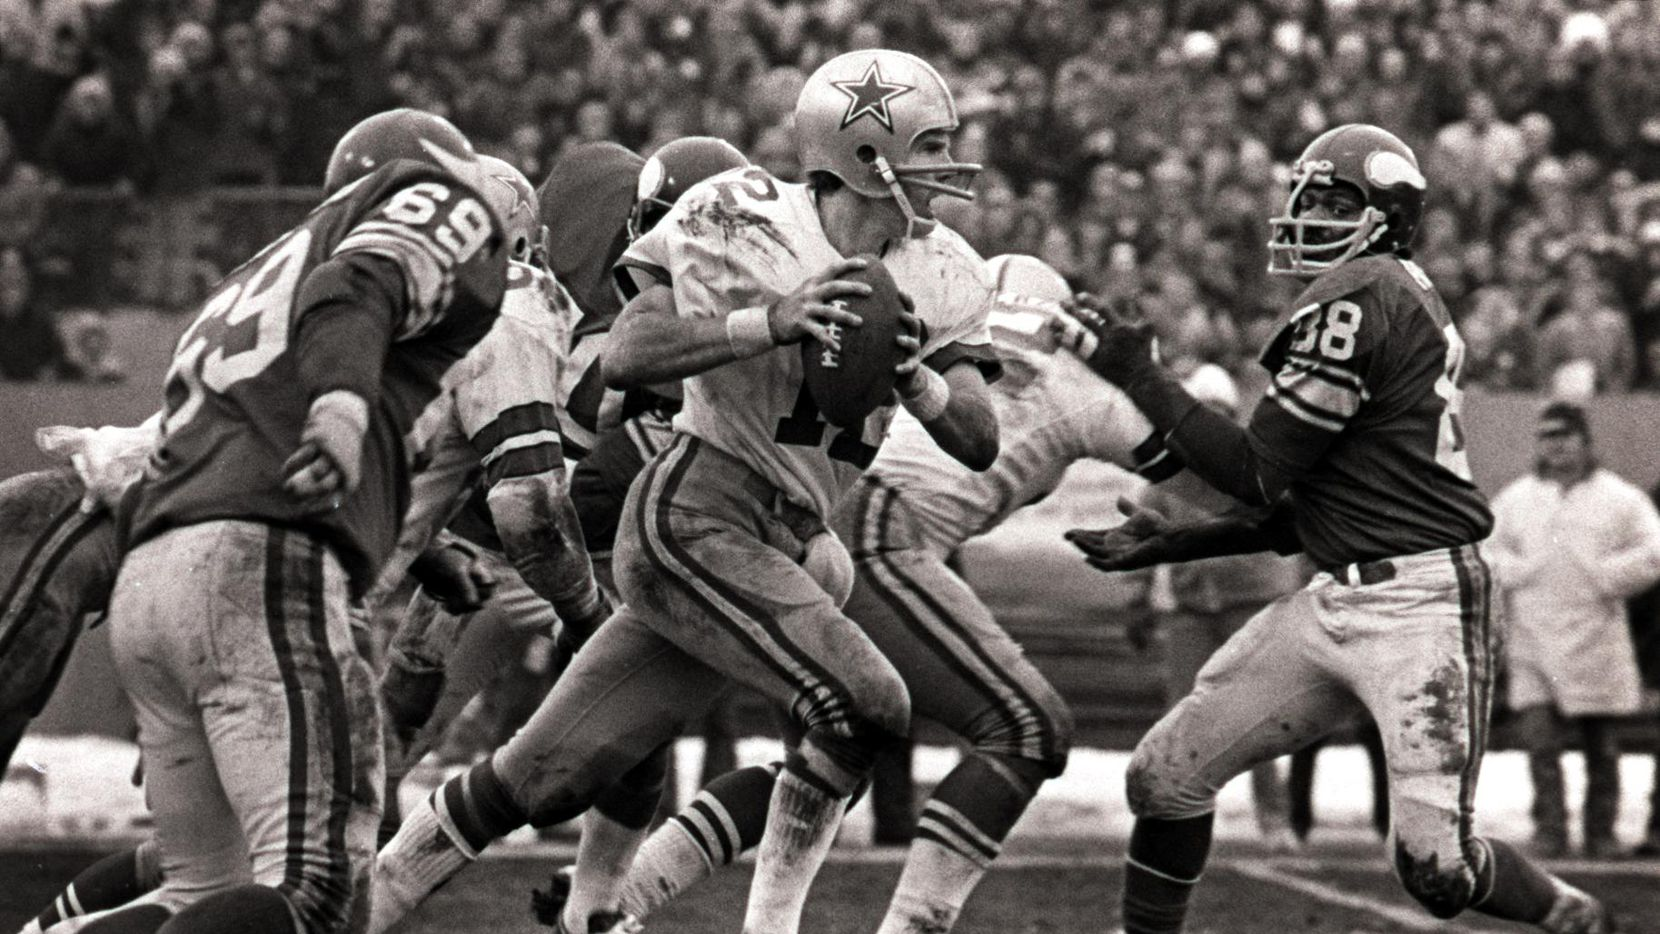 Cowboys quarterback Roger Staubach (12) scrambles for yardage during the final minutes of the Cowboys playoff victory over the Minnesota Vikings in their famous playoff game on 1/8/1975 in the Met Stadium in Minneapolis. Staubach also threw his famous 'Hail Mary Pass' to Drew Pearson (not pictured) in this contest.